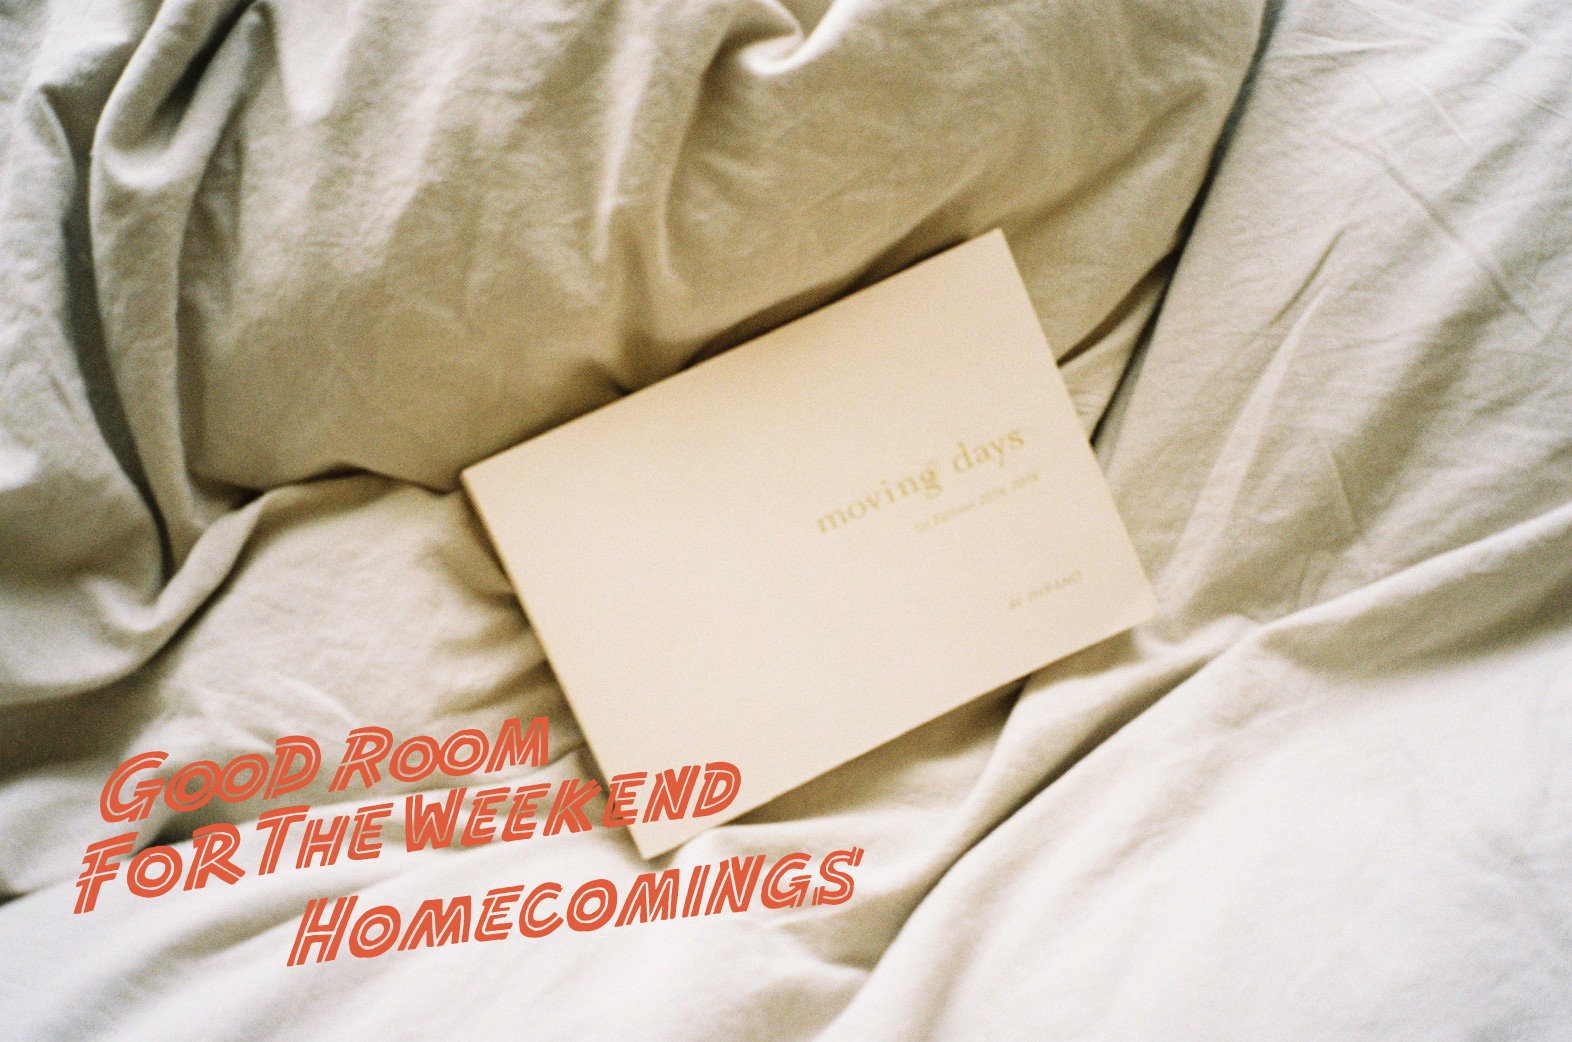 『moving days』 と『Moving Days』– Good Room For The Weekend by Homecomings 福富優樹 –